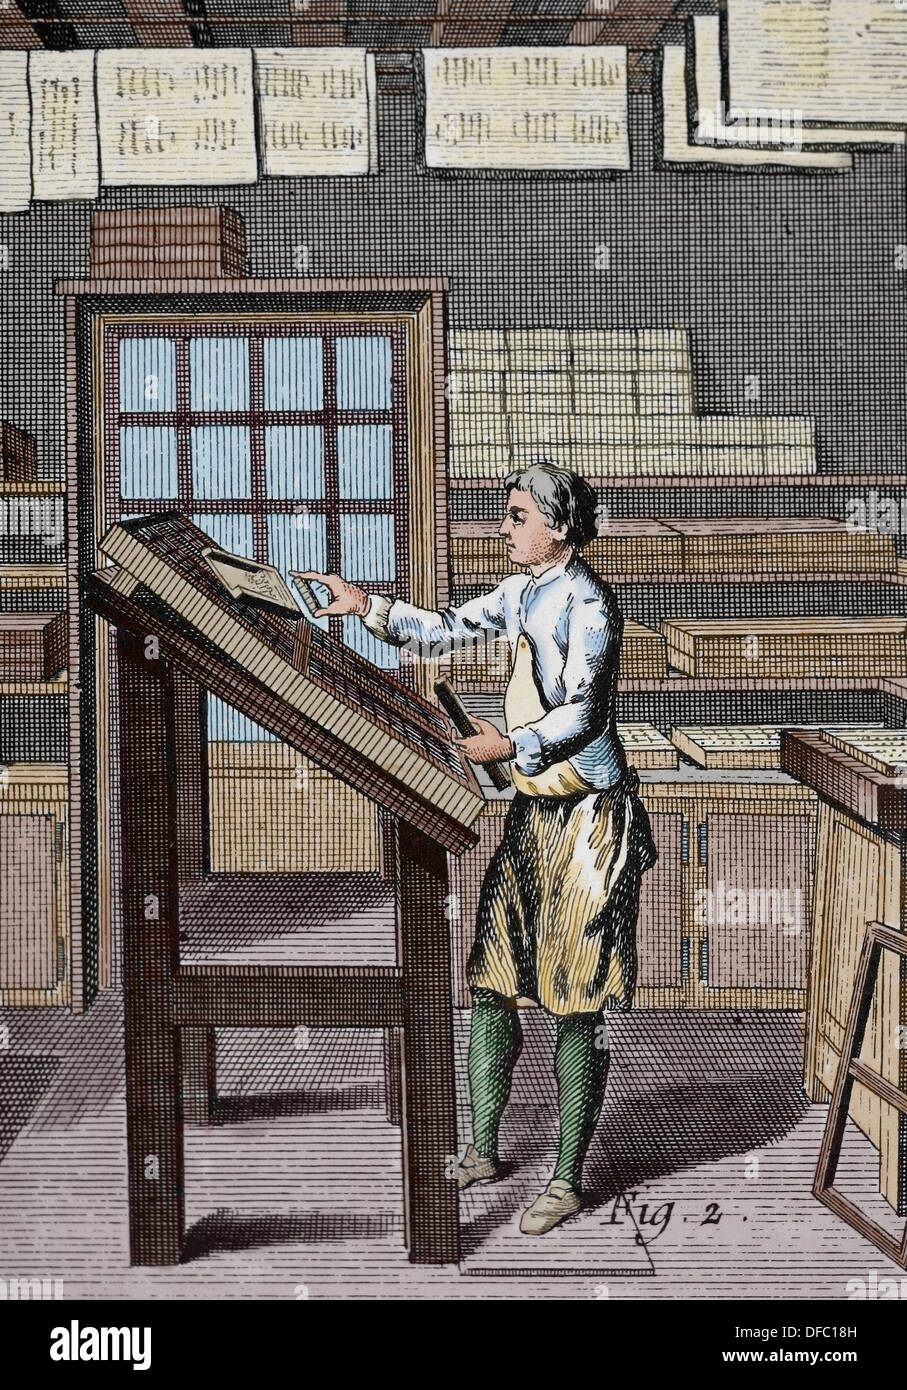 Printing. Composing room of a print shop 'Encyclopedie'. - Stock Image